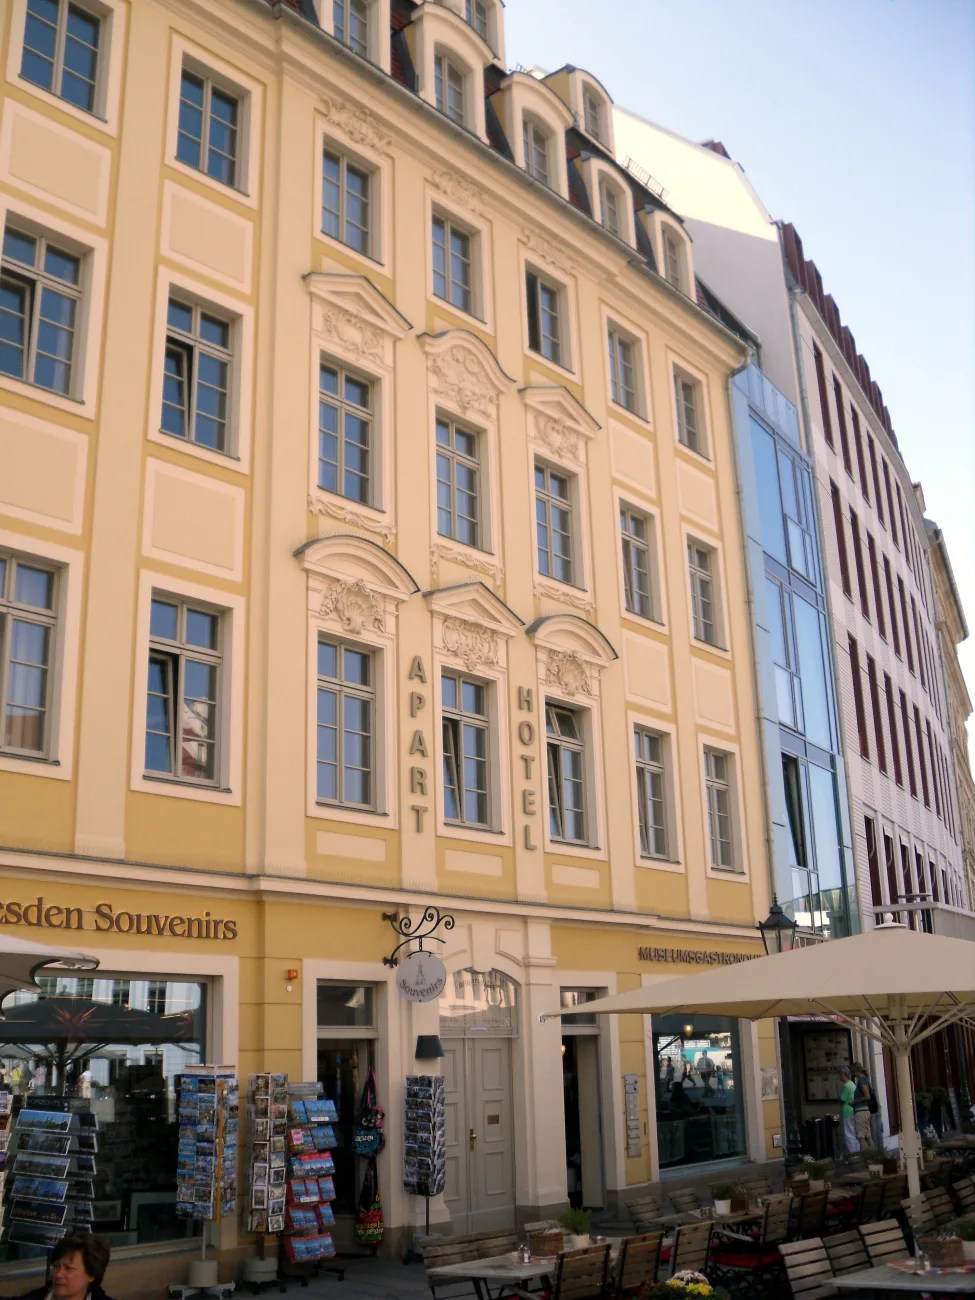 Qf Hotel Dresden Serviced Apartment Altes Dresden Dresden Trivago In